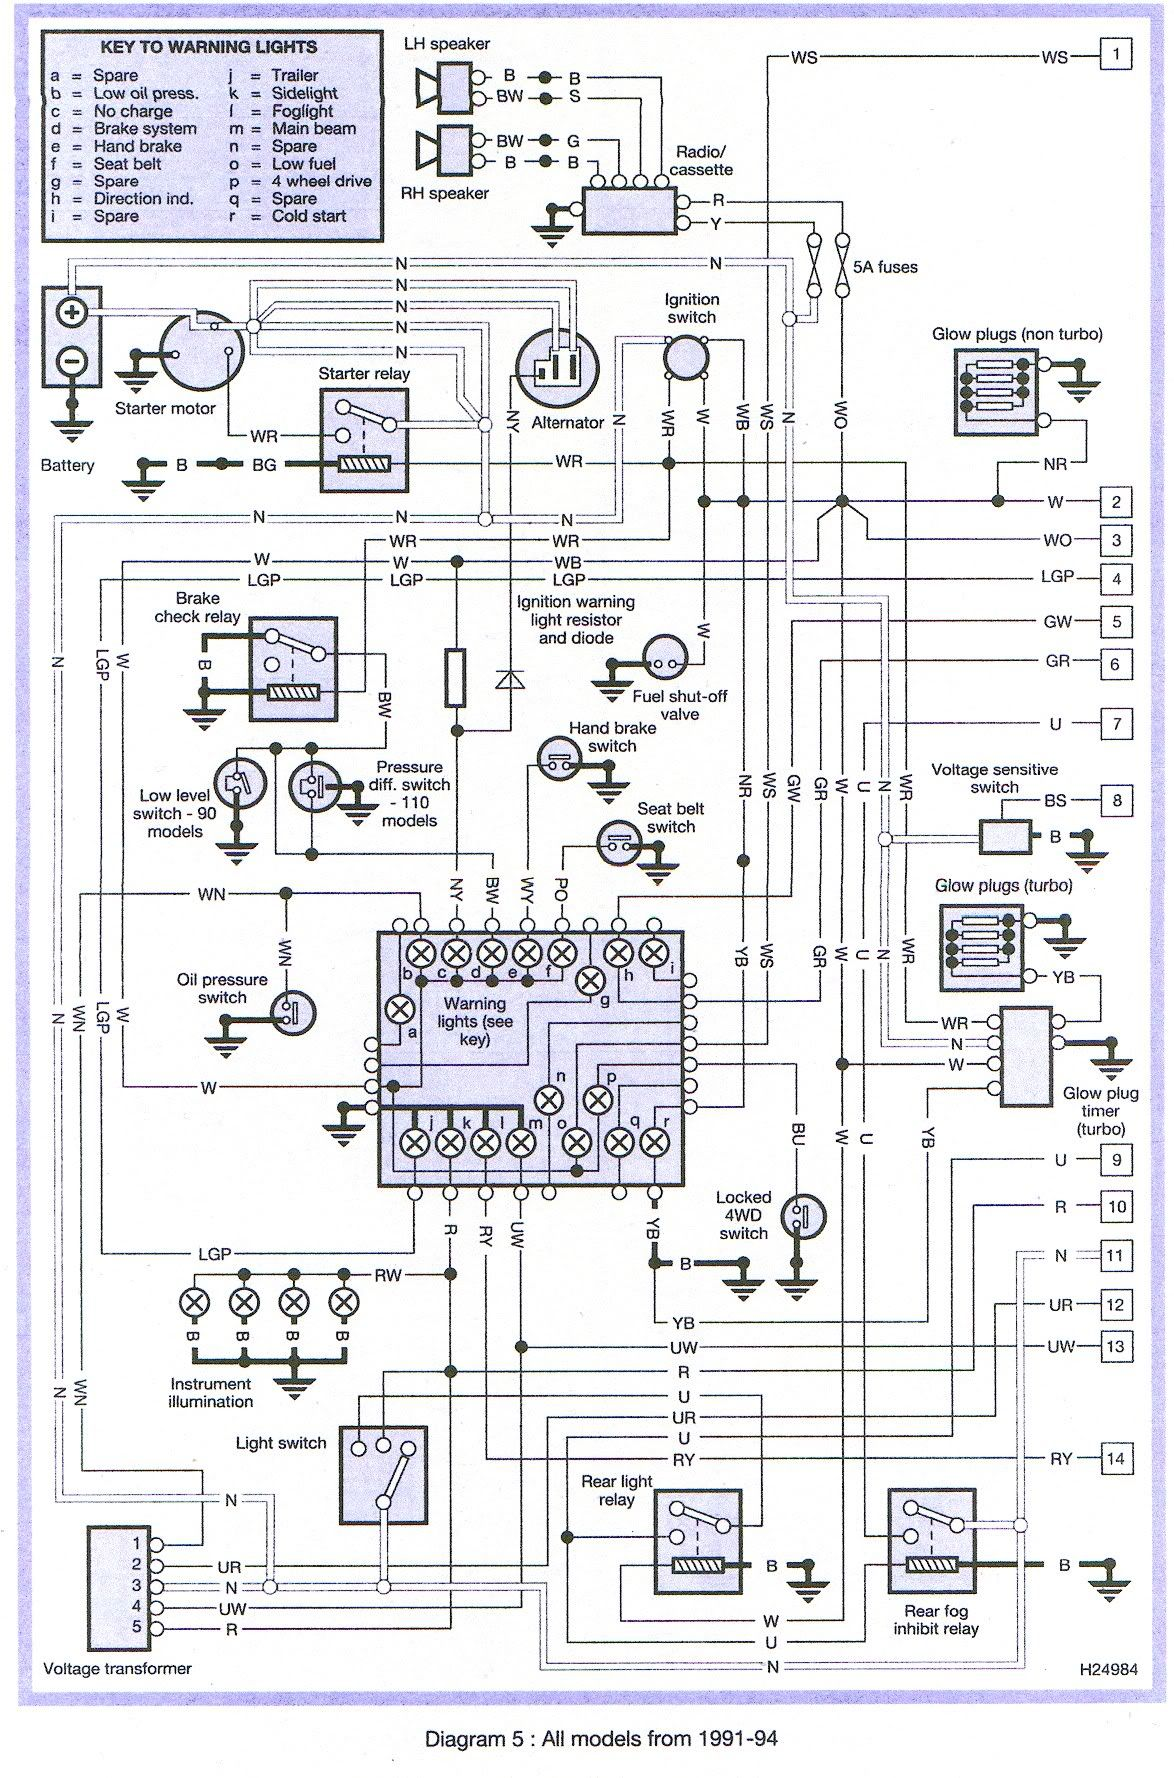 04 Mitsubishi Galant Fuse Box - Wiring Diagrams ROCK